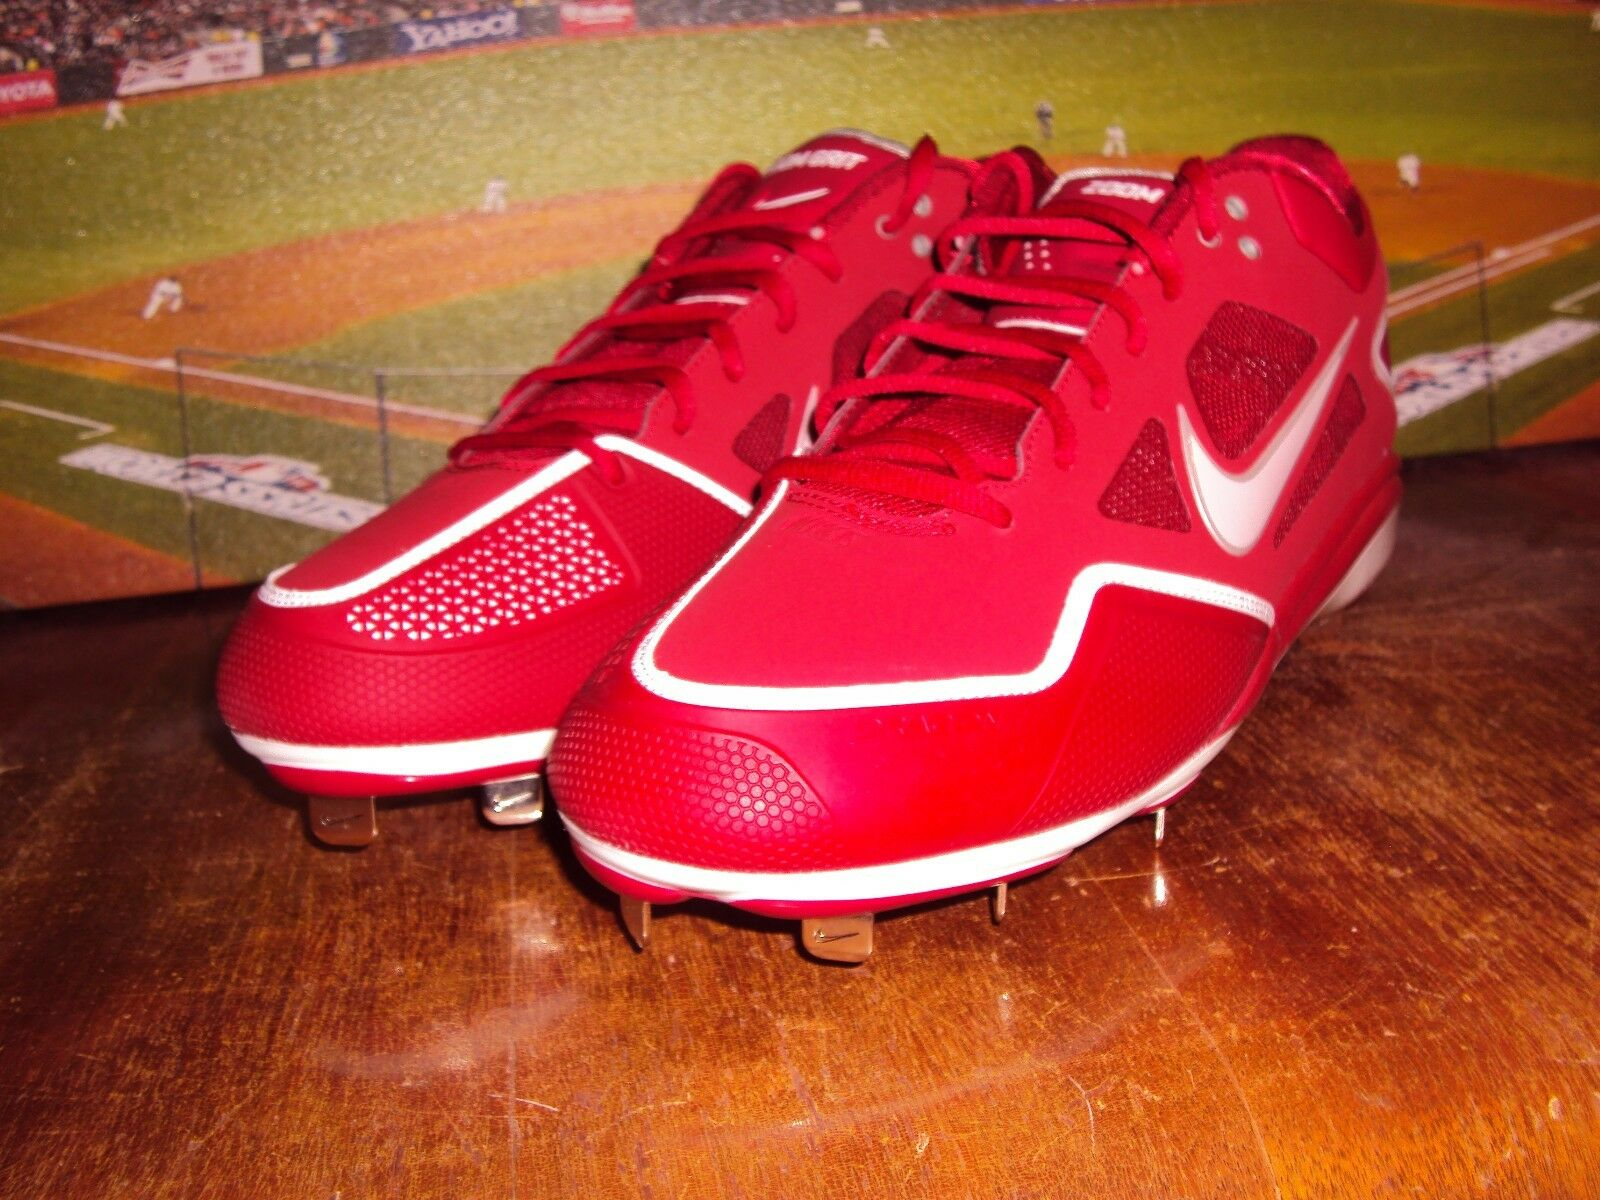 fa80f9c83f8 NIKE ZOOM GRIT METAL BASEBALL CLEATS RED WHITE RARE COLOR LOW ...